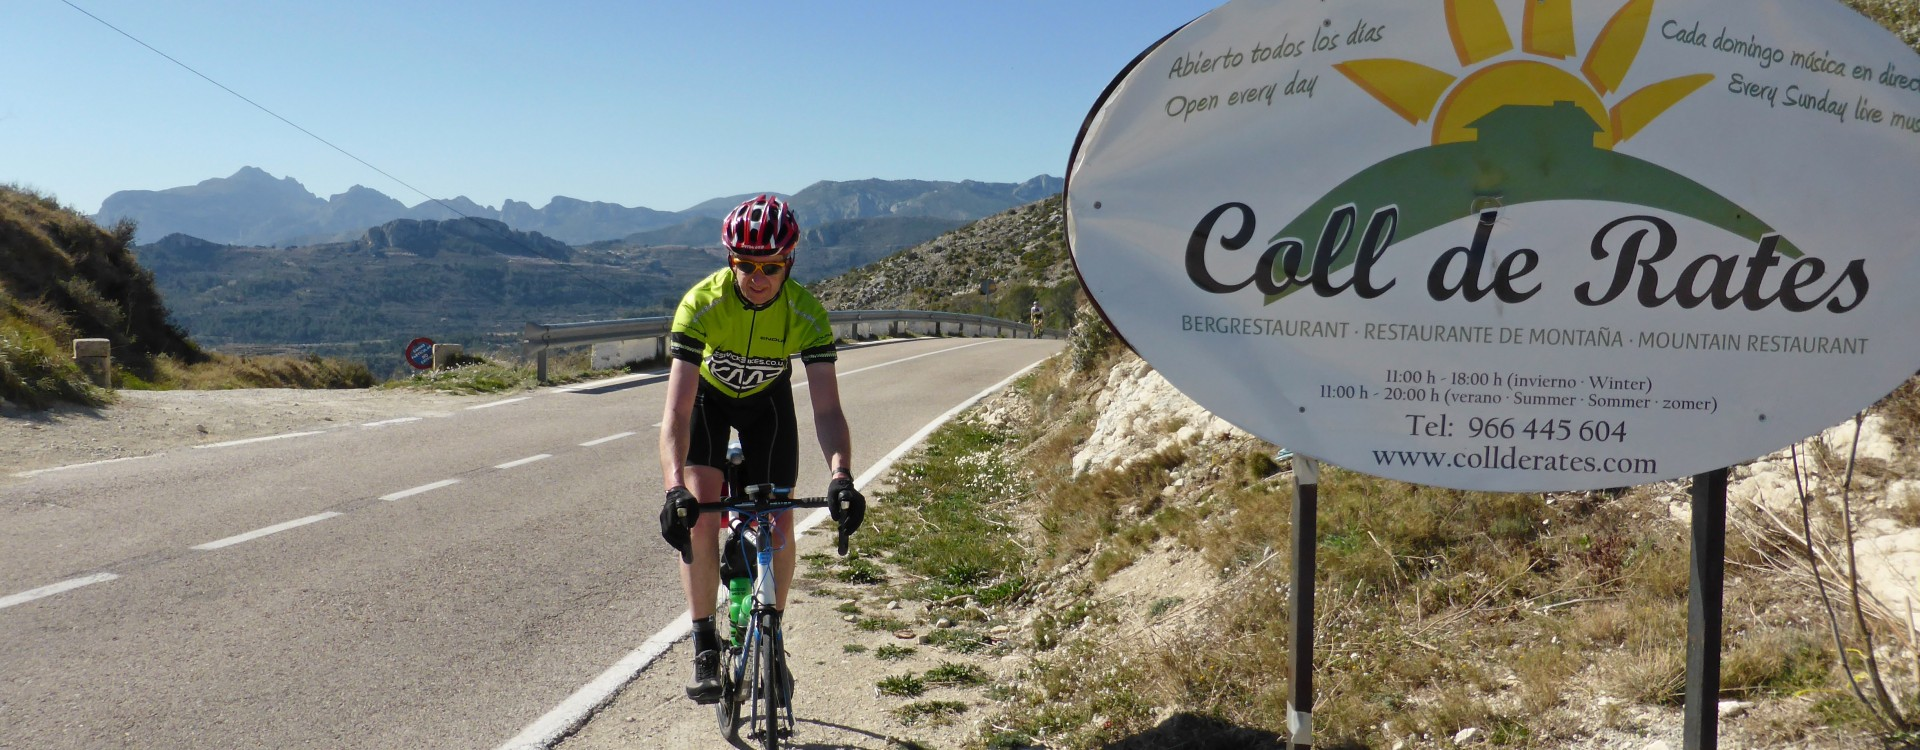 Amos at the Coll de Rates